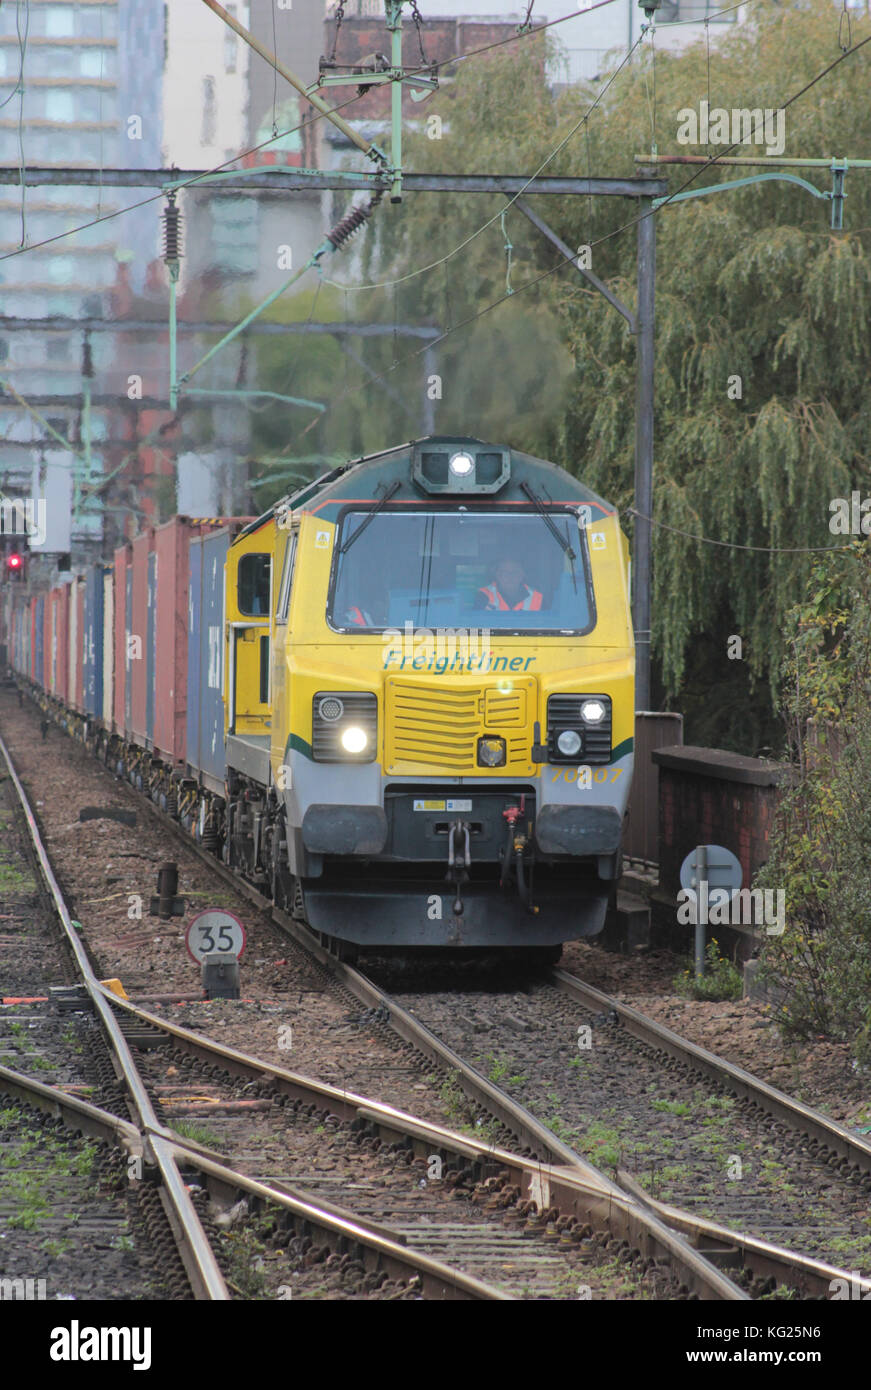 A Freightliner container train approaches Manchester Piccadilly train station hauled by diesel locomotive no 70007. - Stock Image